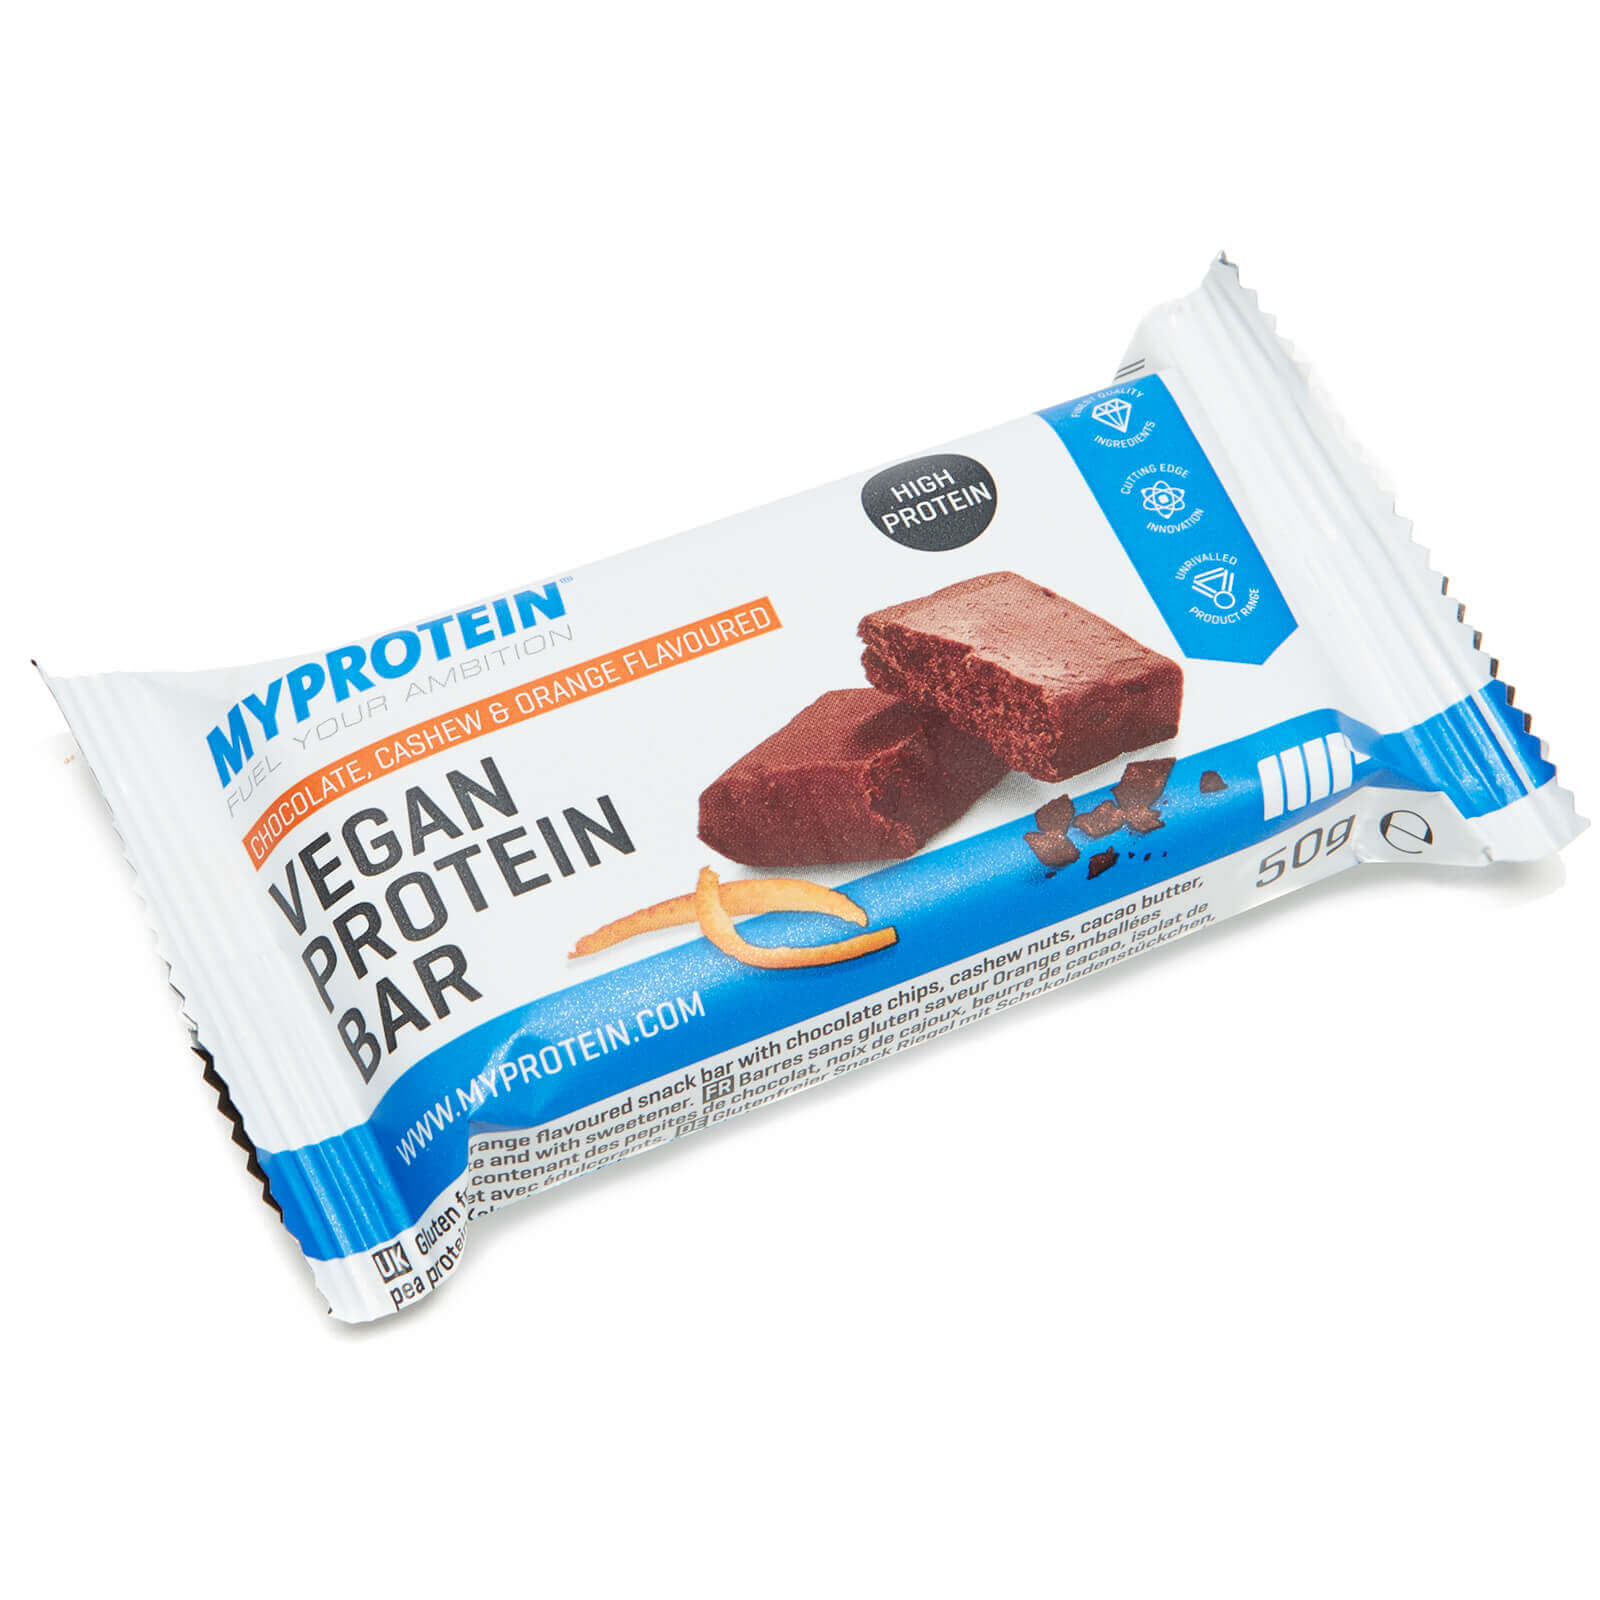 Vegan Protein Bar